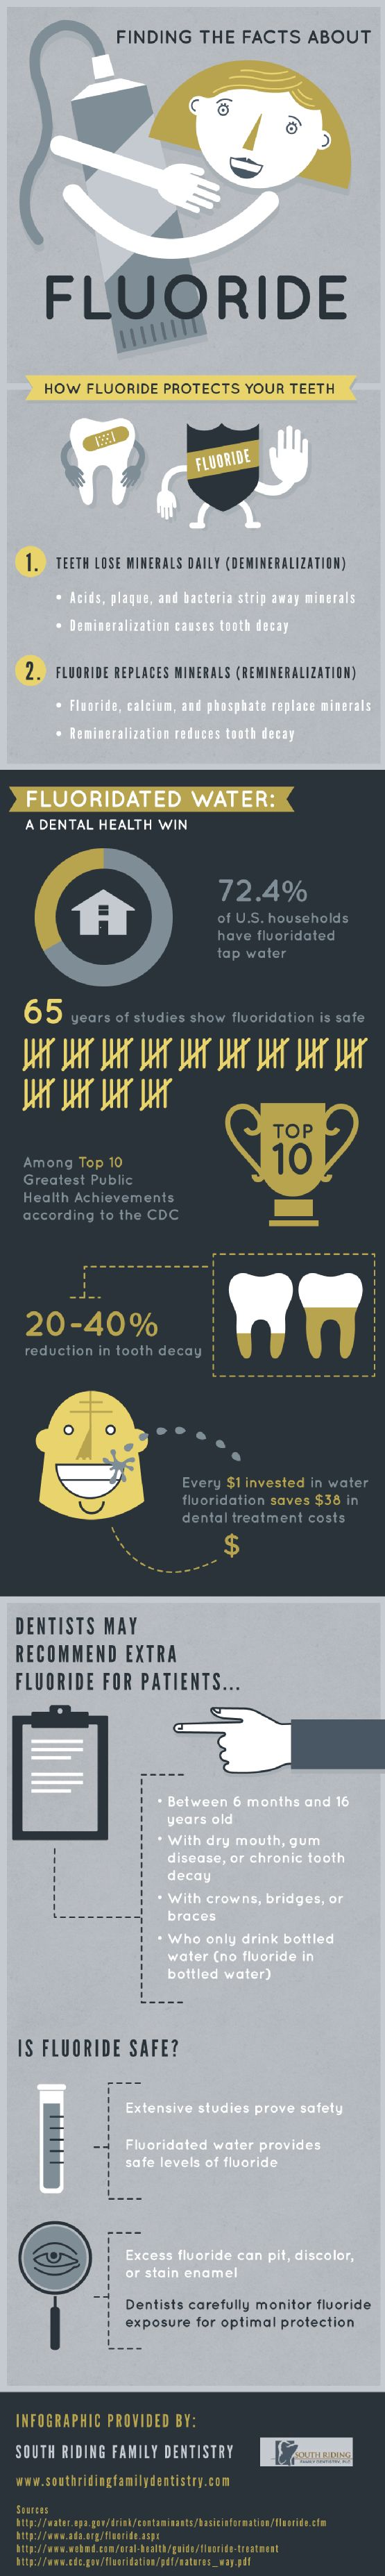 People with dry mouth, gum disease, or chronic tooth decay can benefit from fluoride treatments. Acid, plaque, and bacteria strip away minerals in the teeth, but fluoride replaces them to prevent tooth decay. This infographic from a family dentist in Chantilly offers more information.